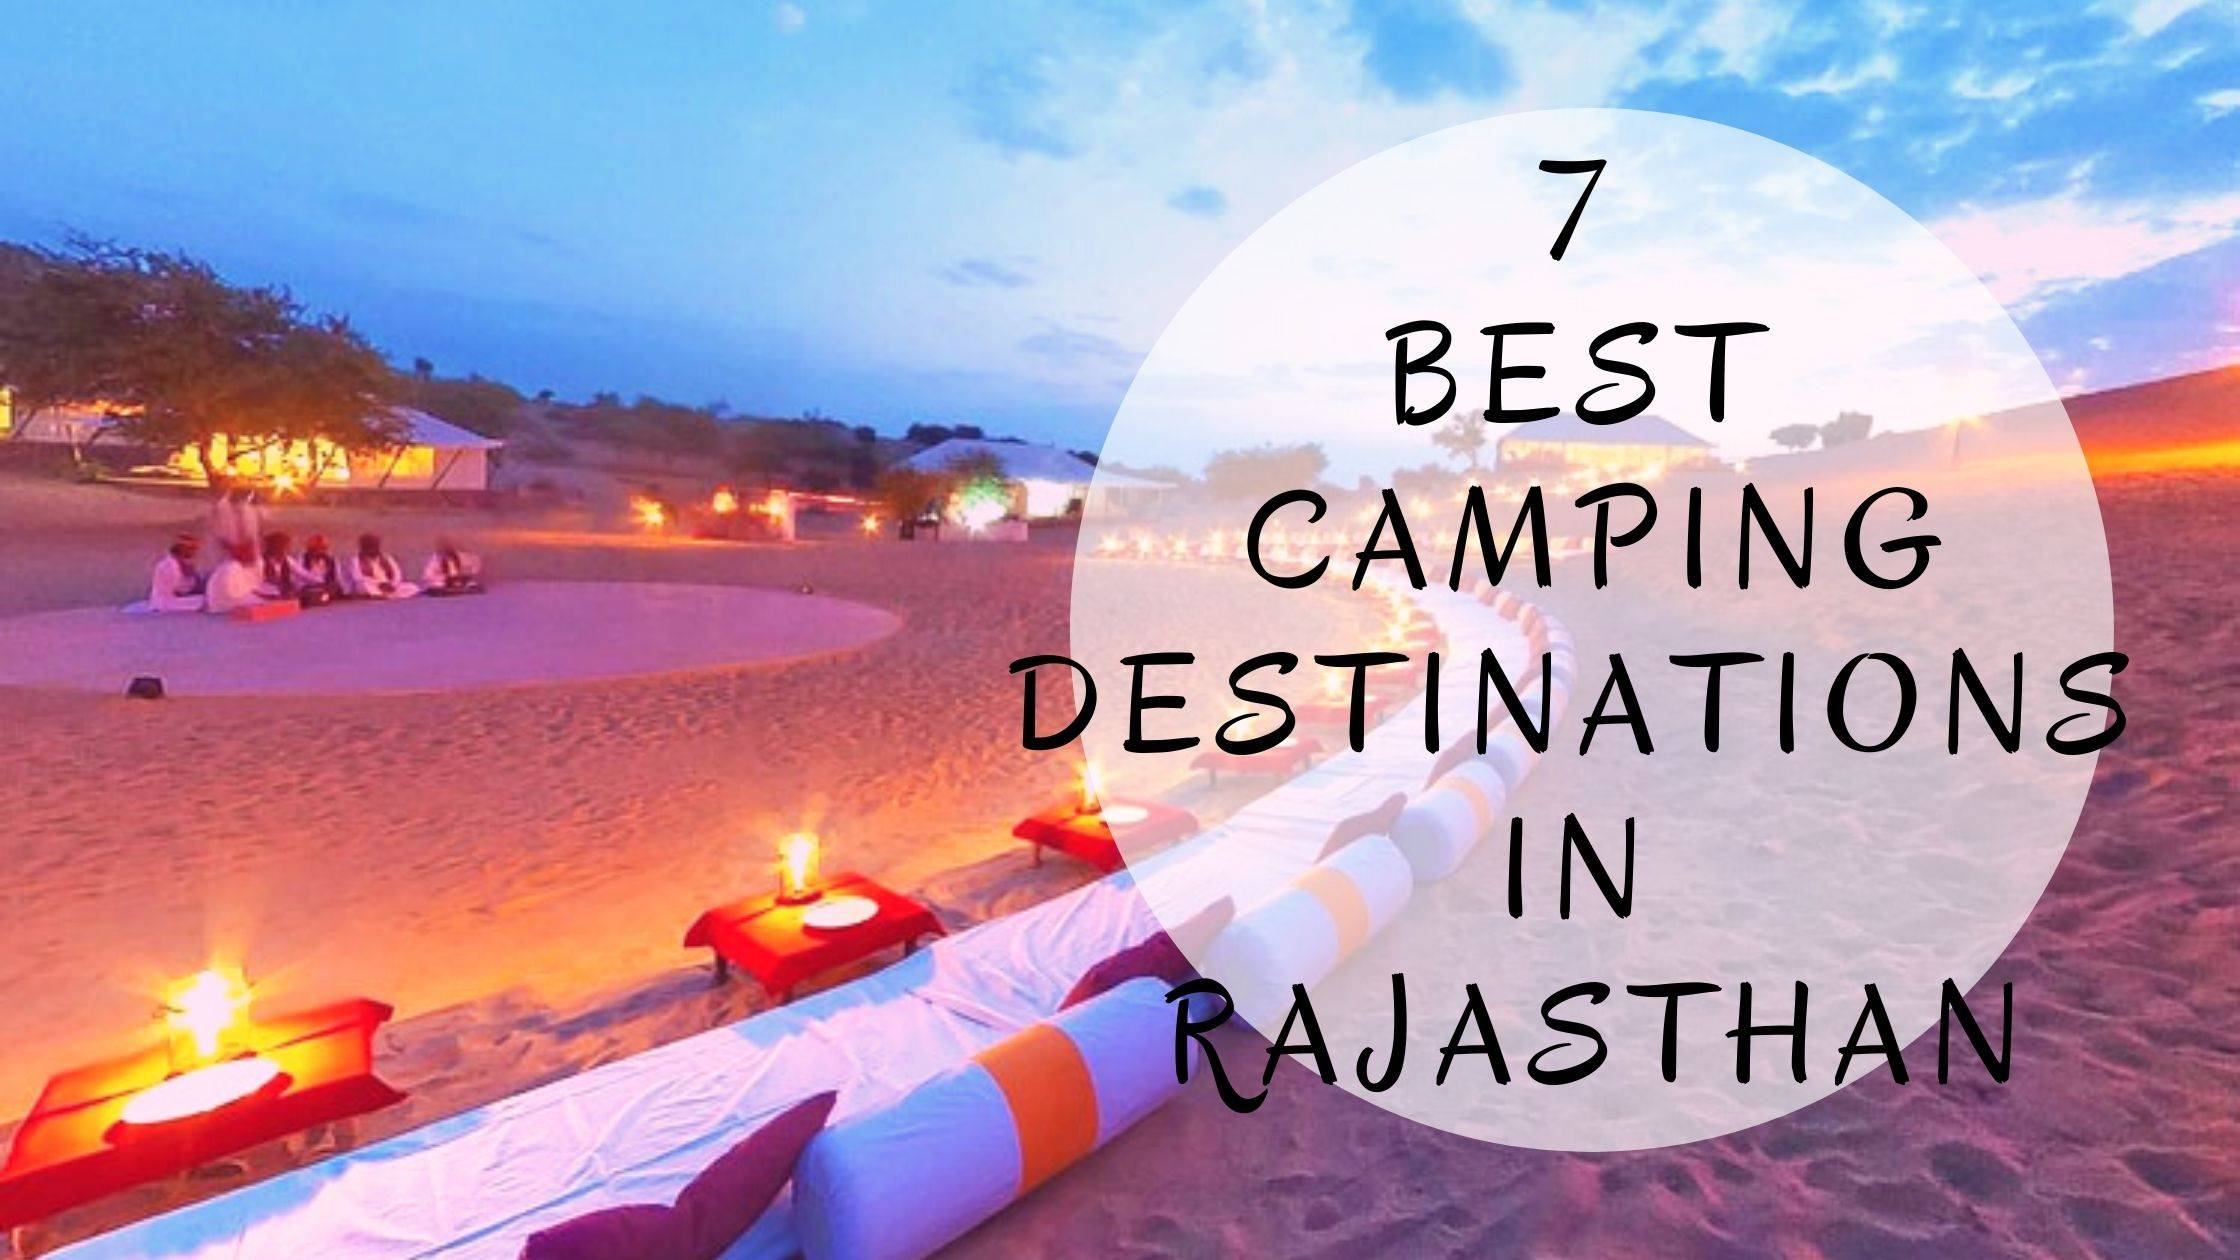 7 Best Camping Destinations In Rajasthan